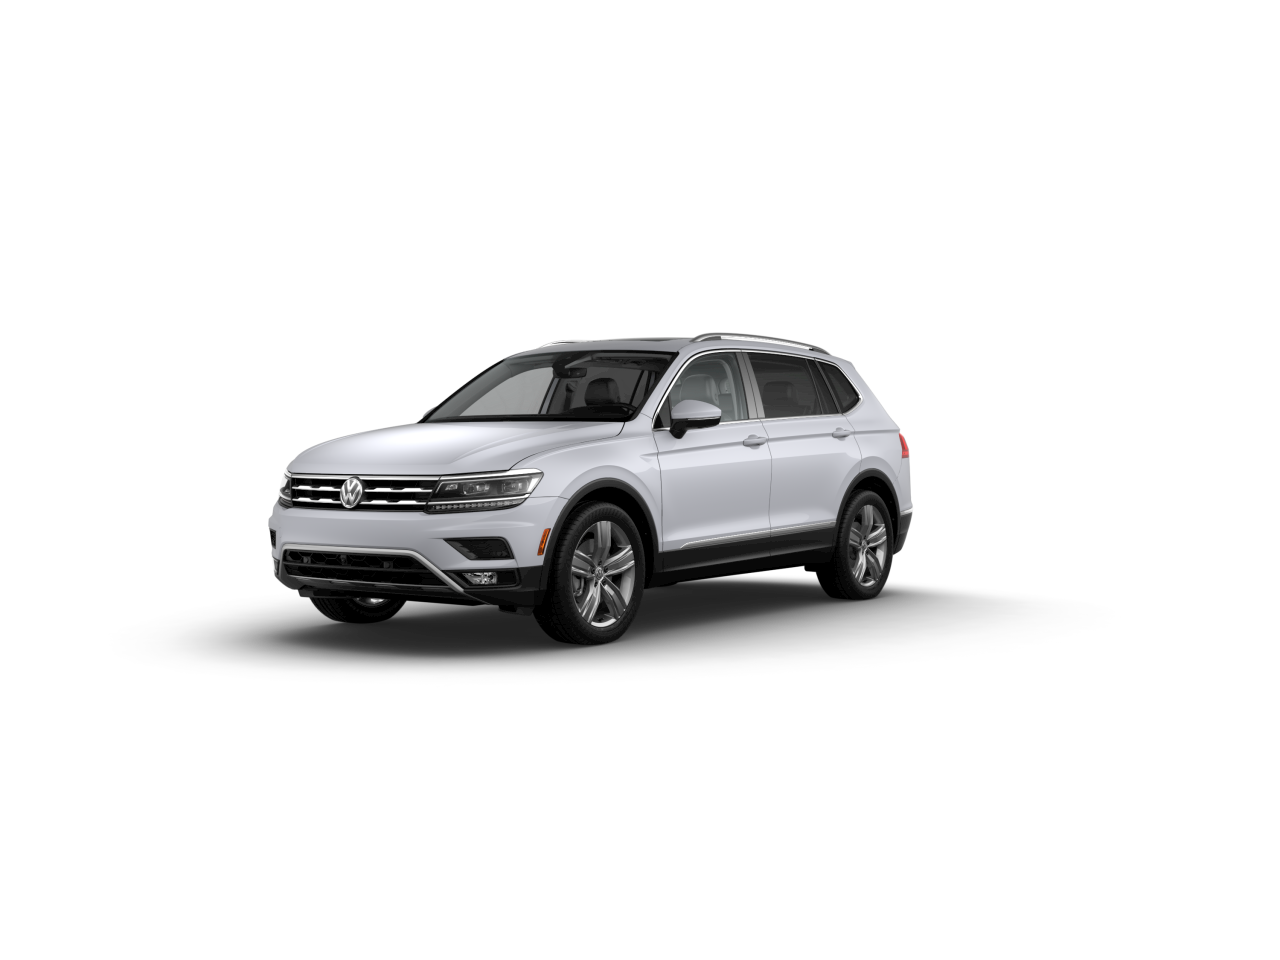 What colors does the 2019 Volkswagen Tiguan come in?